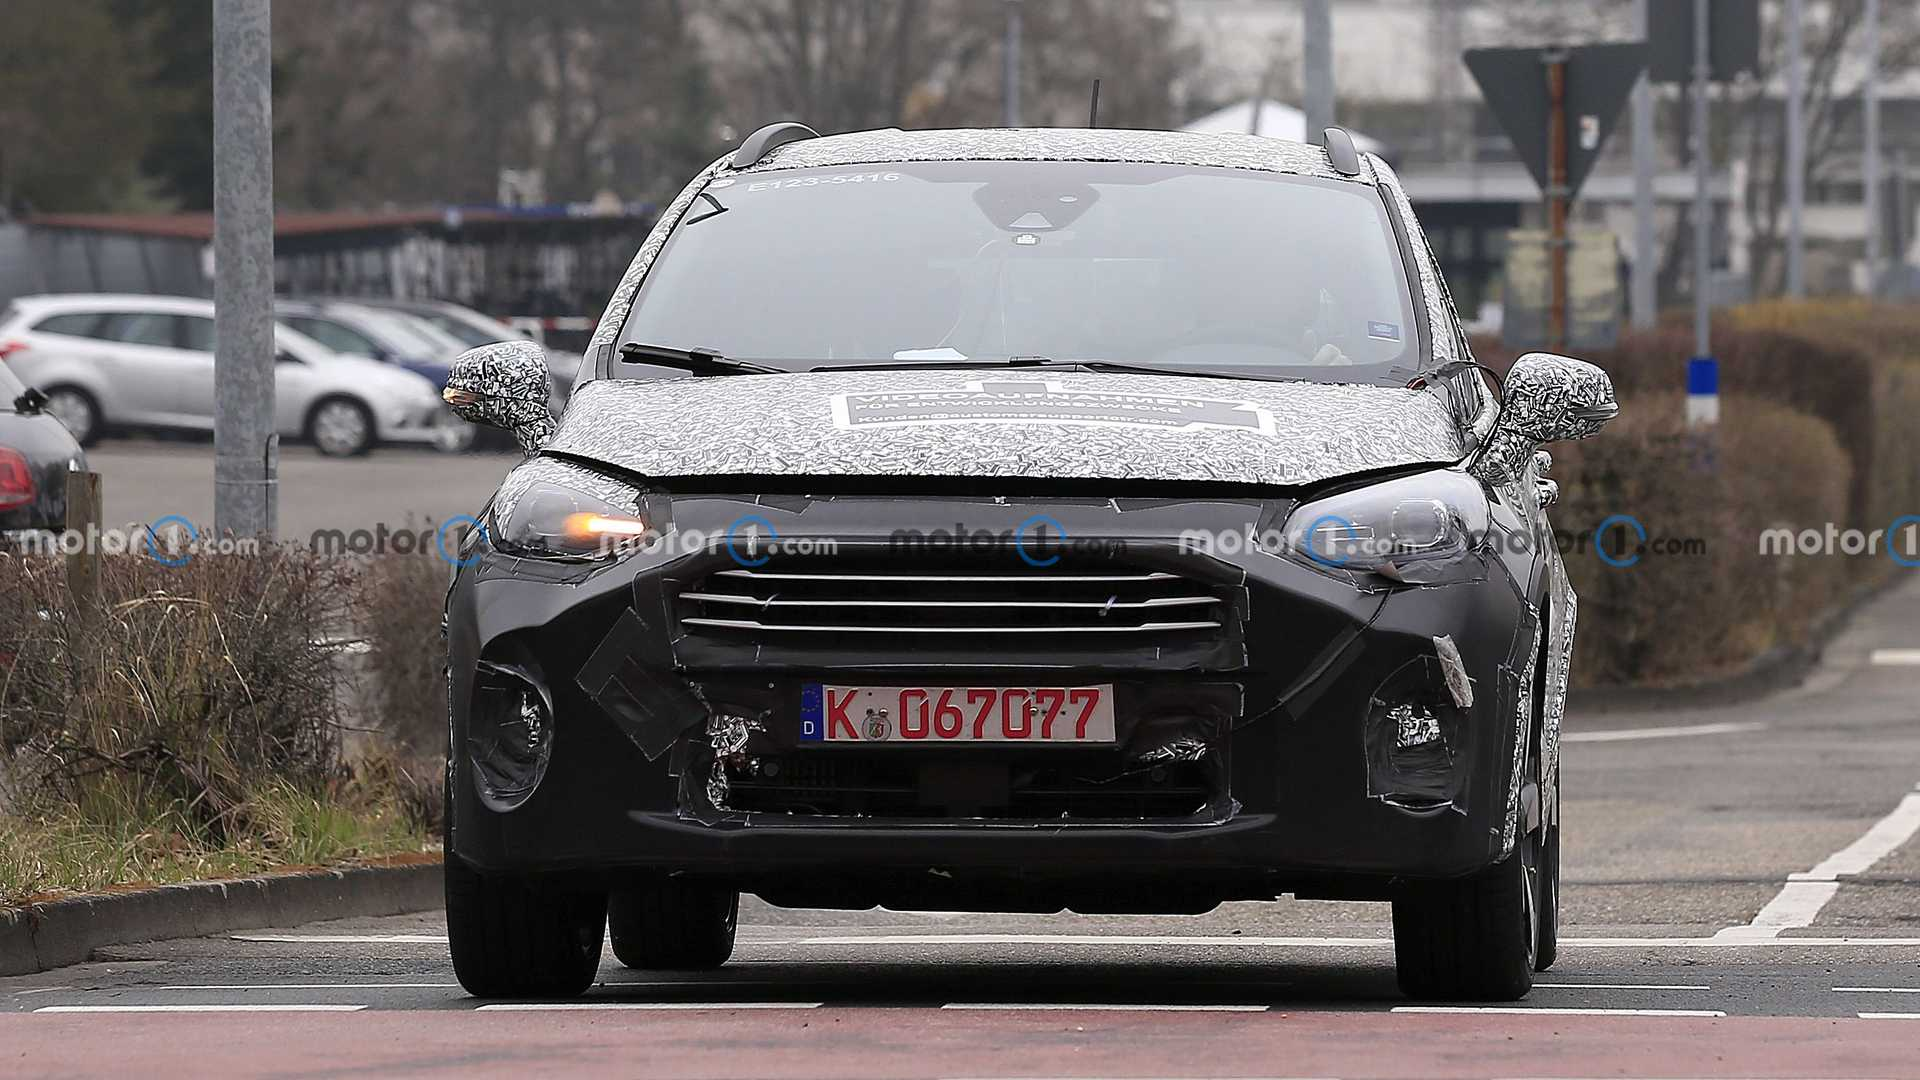 First spy photo of the Ford Fiesta facelift (front)